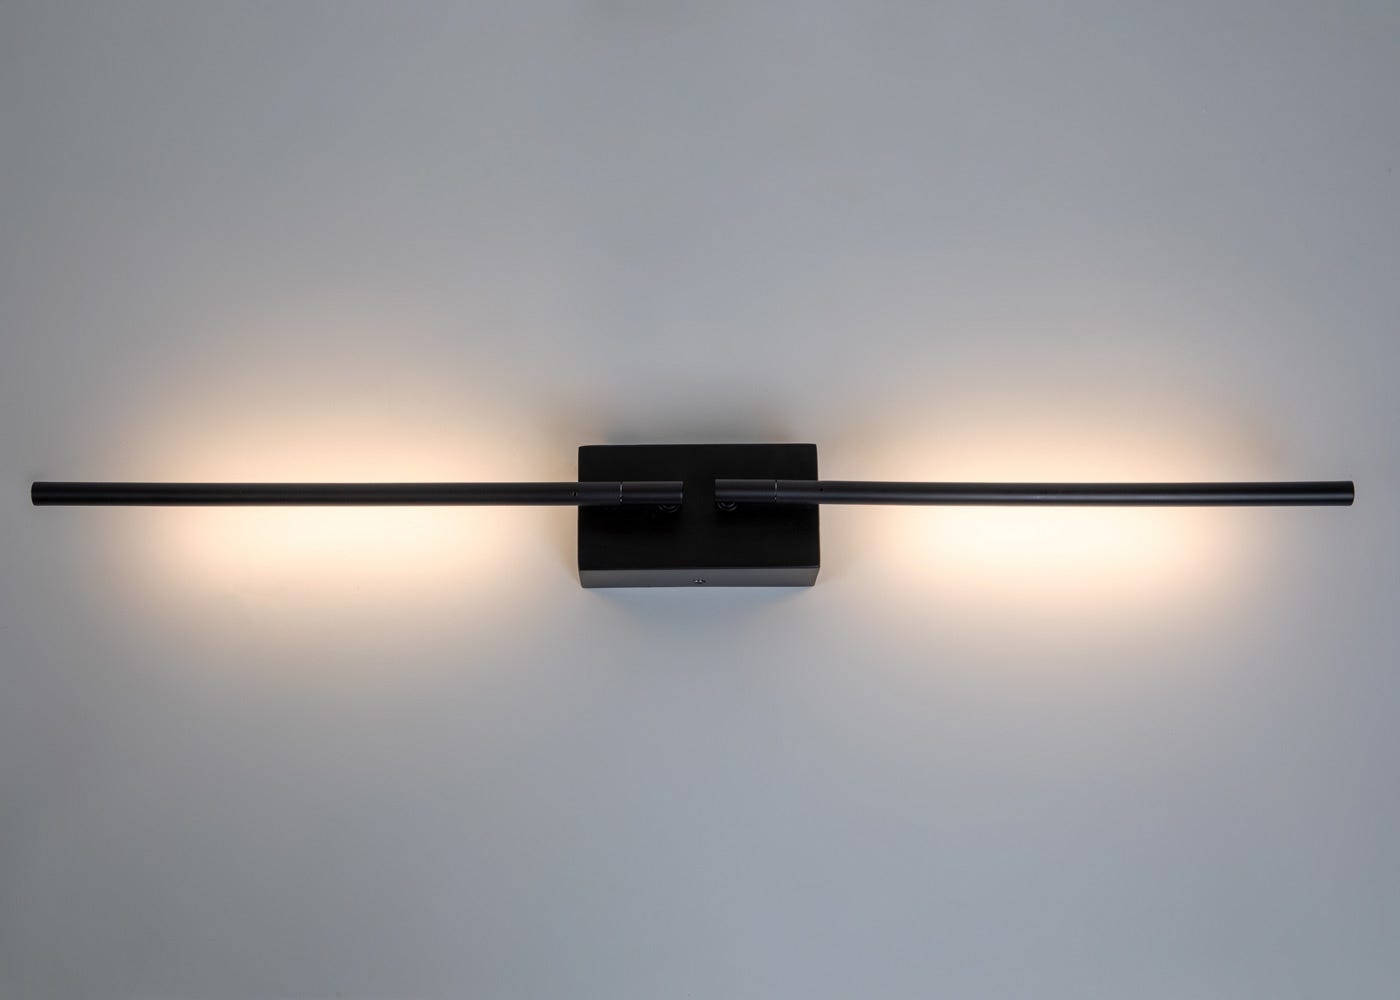 As shown: Saber LED wall light in black - On.